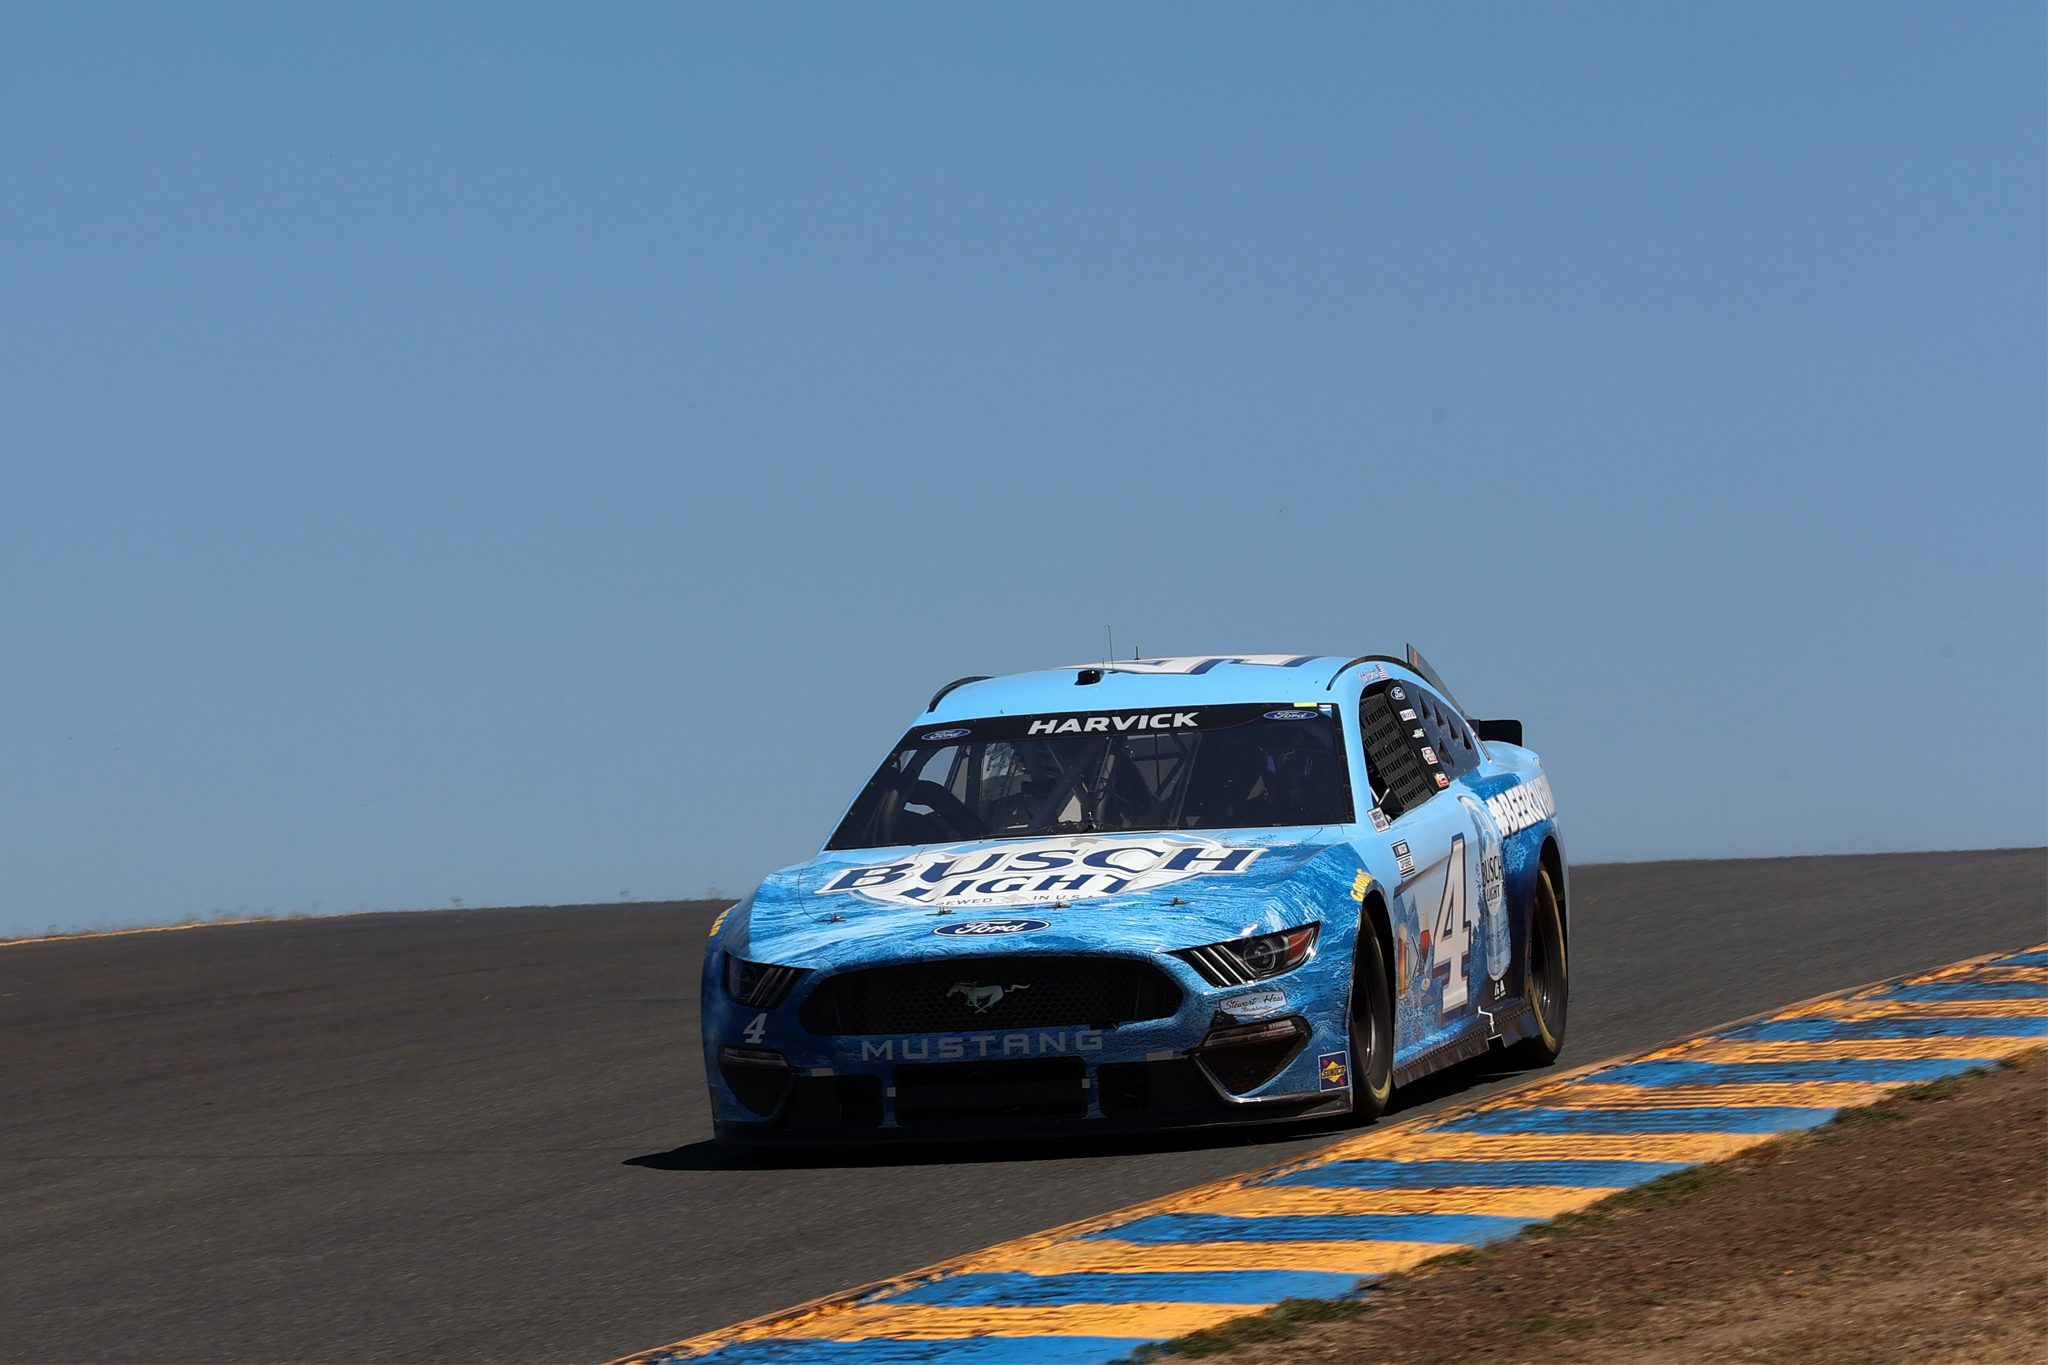 SONOMA, CALIFORNIA - JUNE 06: Kevin Harvick, driver of the #4 Busch Light #BeerOverWine Ford, drives during the NASCAR Cup Series Toyota/Save Mart 350 at Sonoma Raceway on June 06, 2021 in Sonoma, California. (Photo by Carmen Mandato/Getty Images) | Getty Images